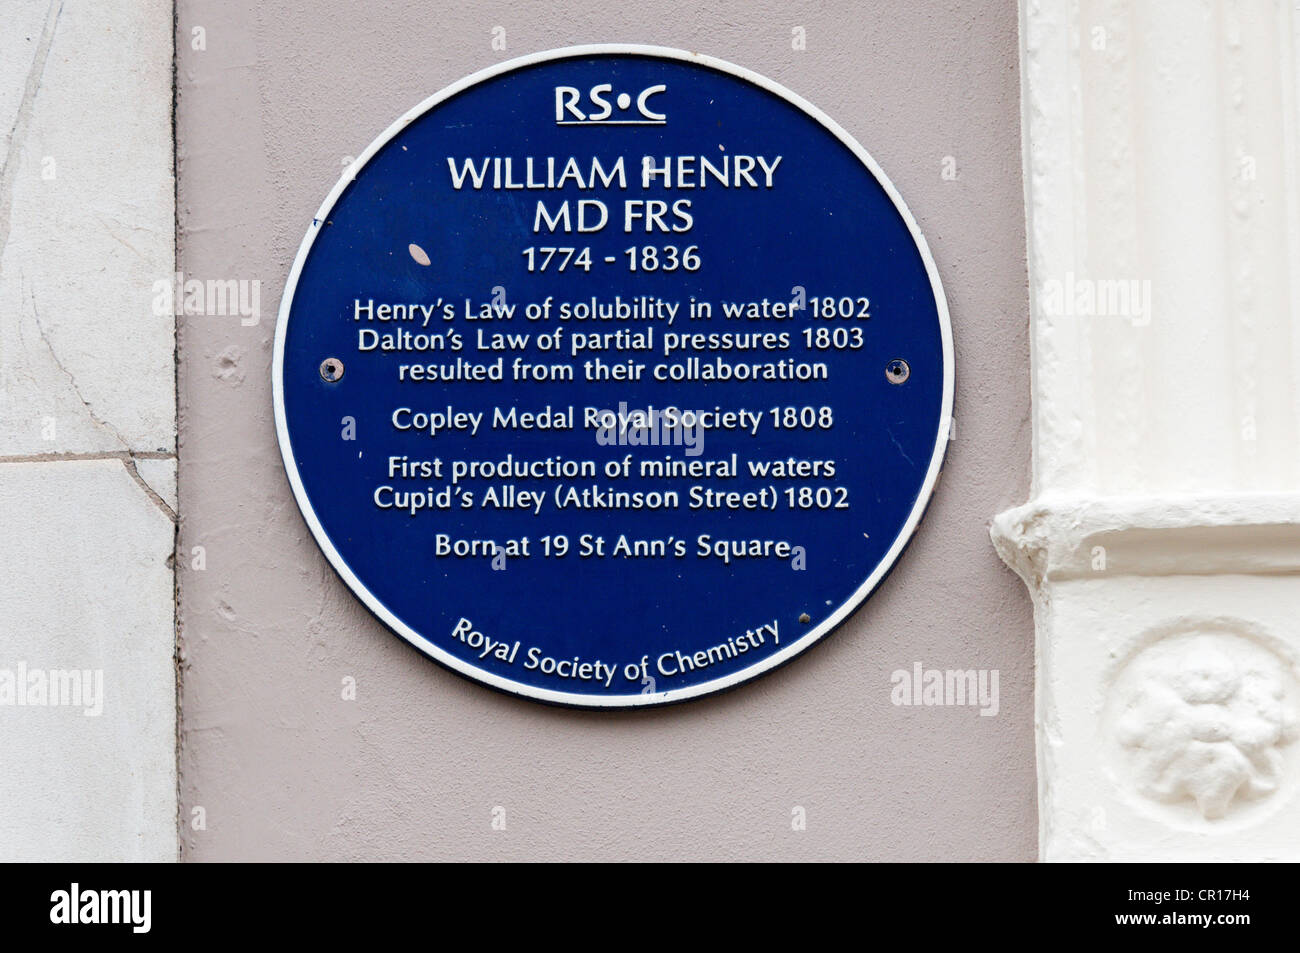 A blue plaque in St Ann's Square, Manchester, marks the birthplace of William Henry the Victorian chemist. Stock Photo